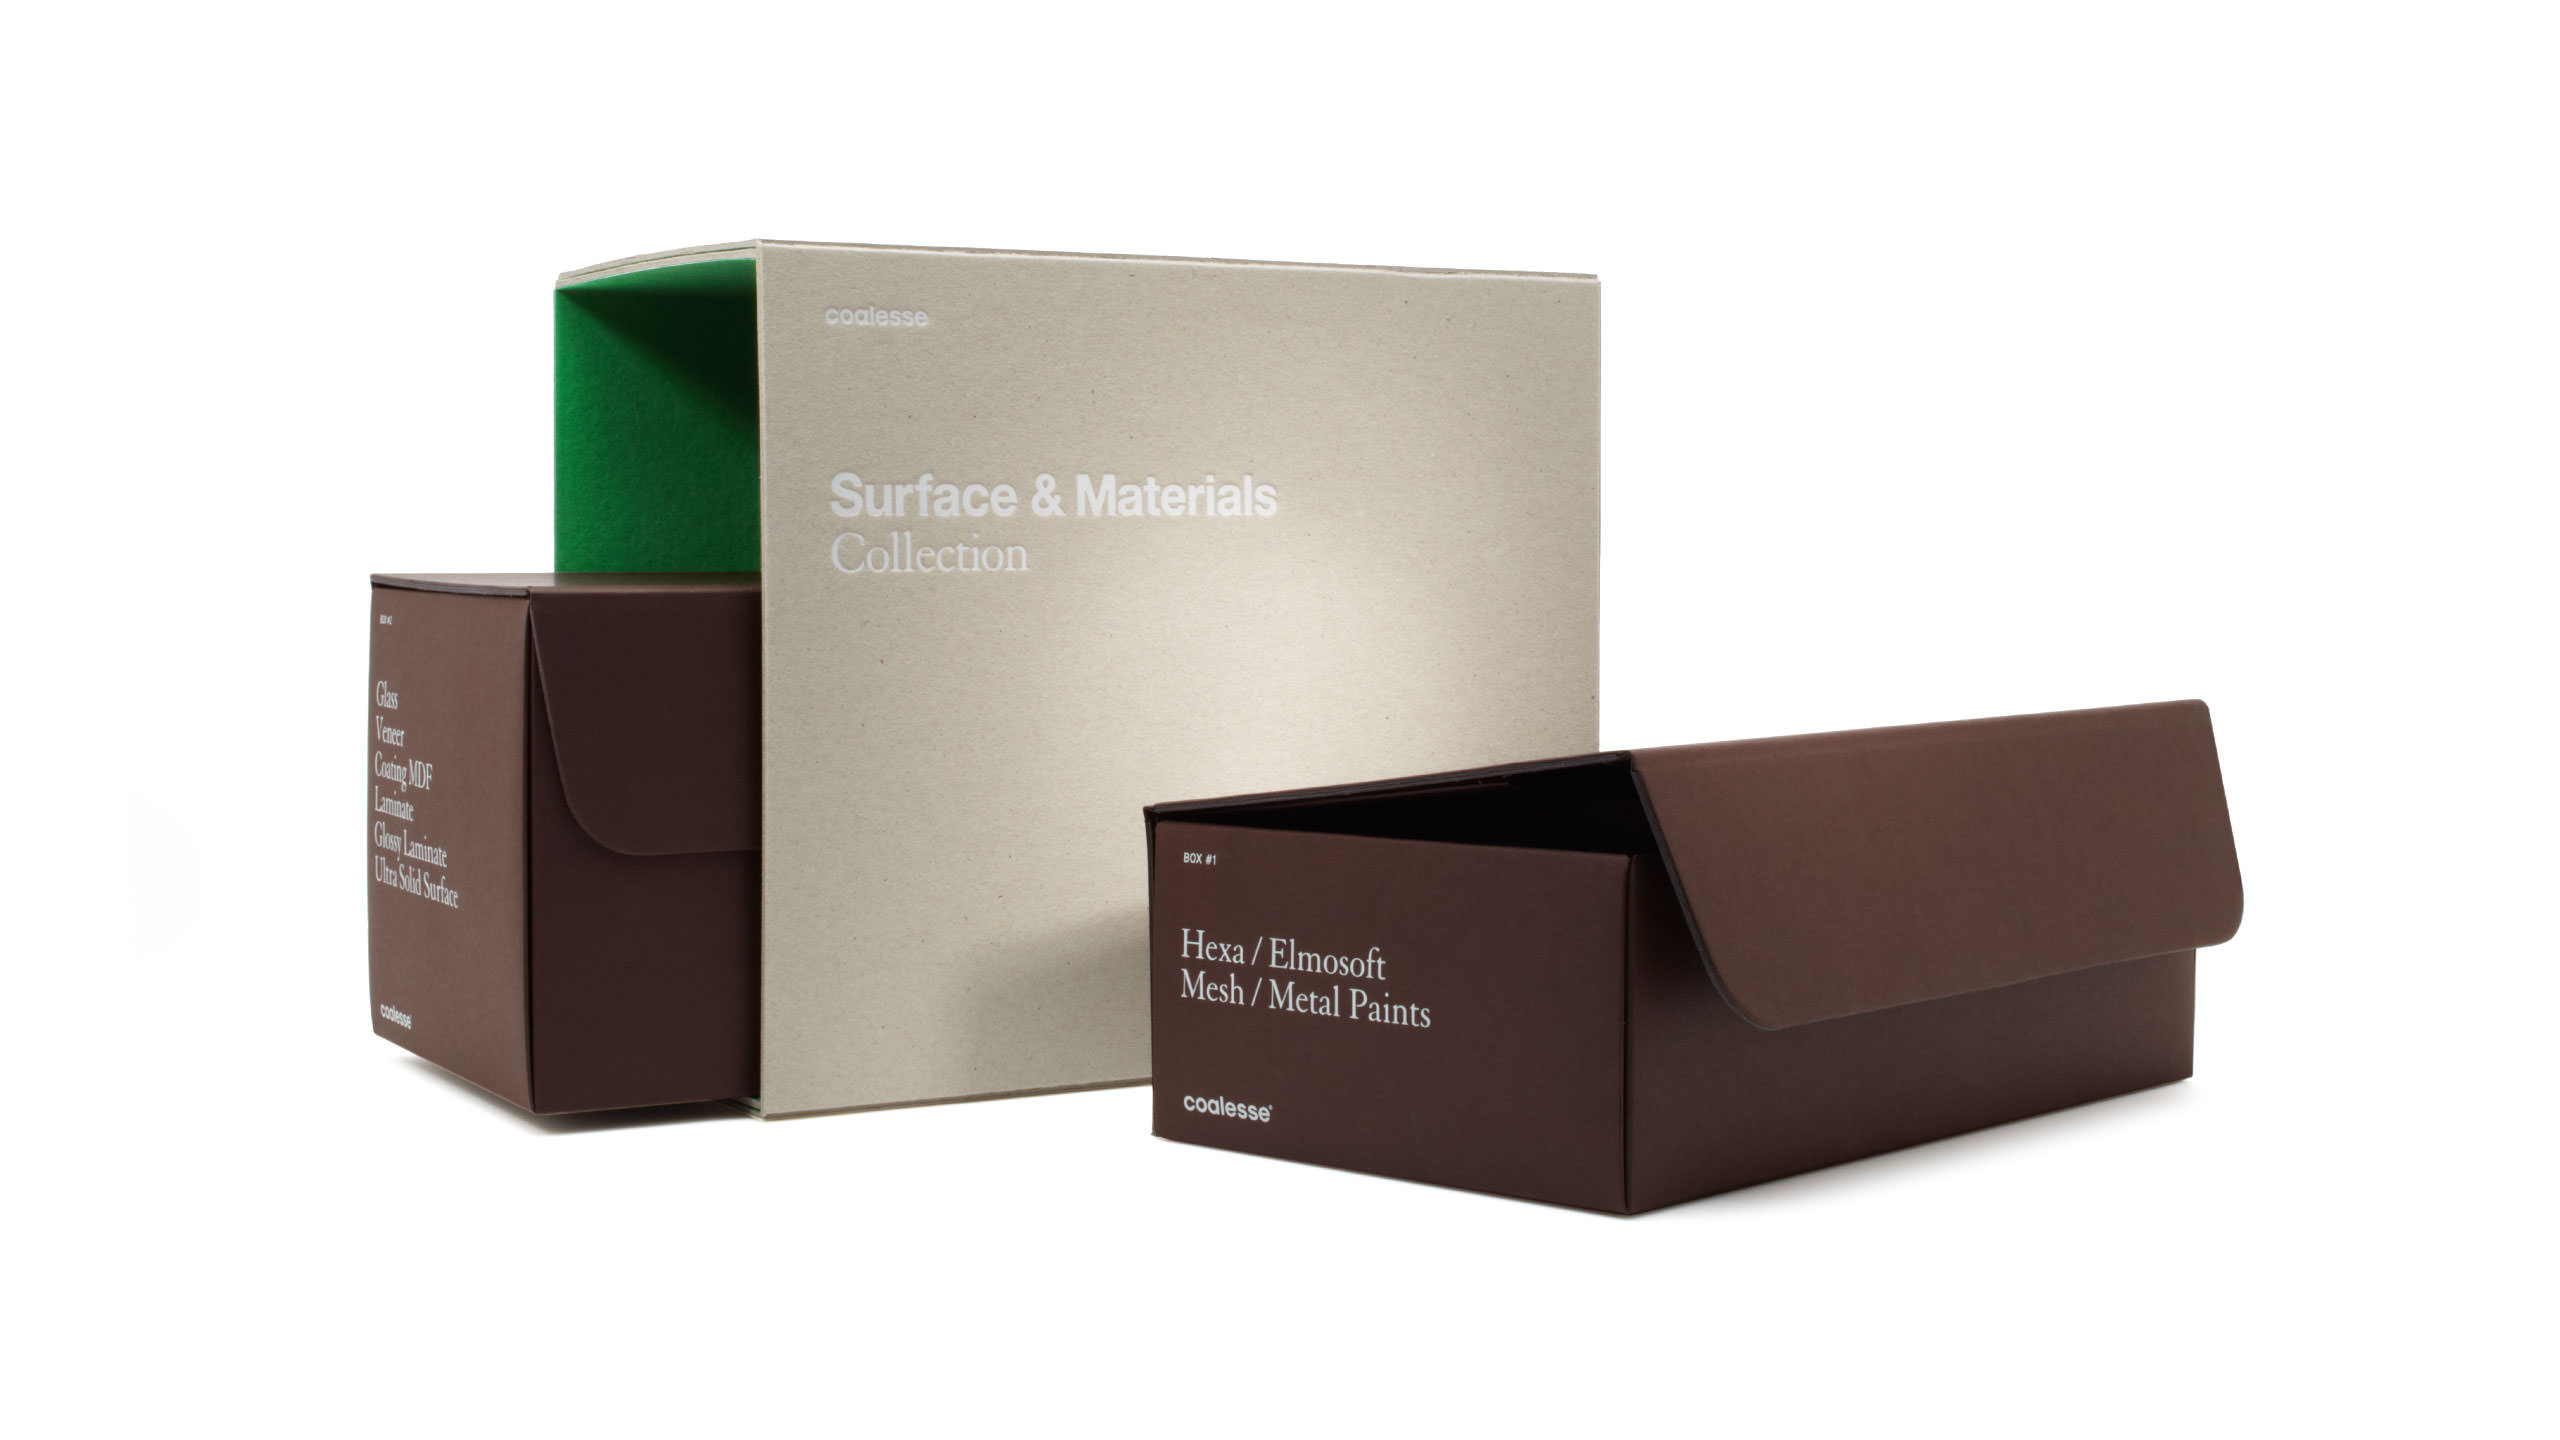 Coalesse Brand Launch Packaging with Slip Case Boxes